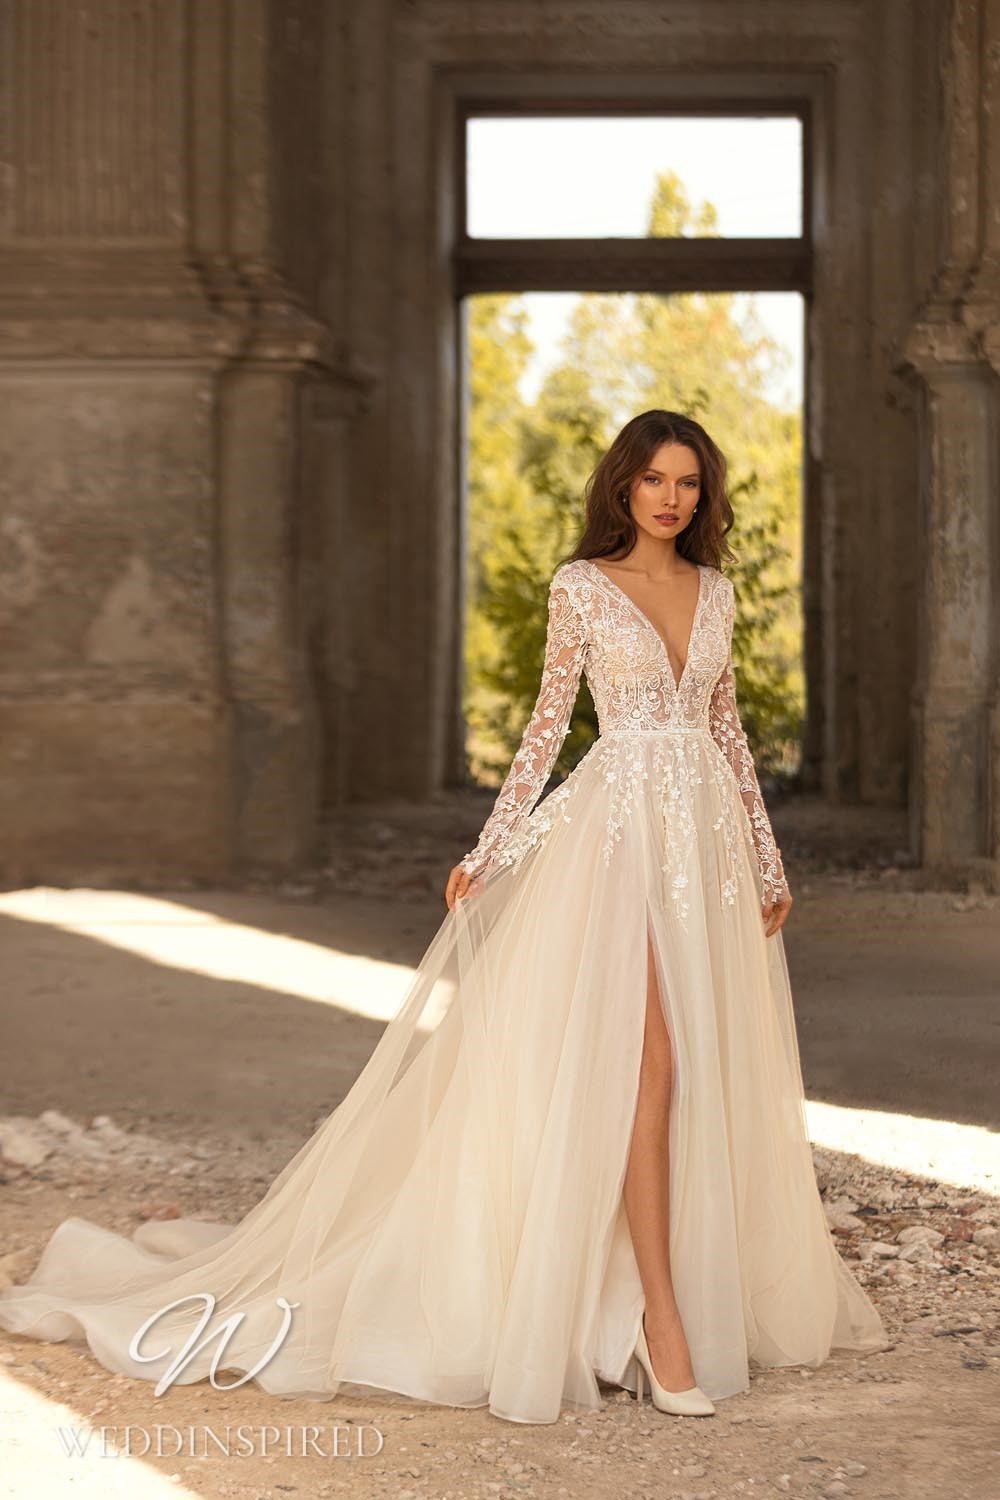 An Eva Lendel 2021 lace and tulle A-line wedding dress with long sleeves